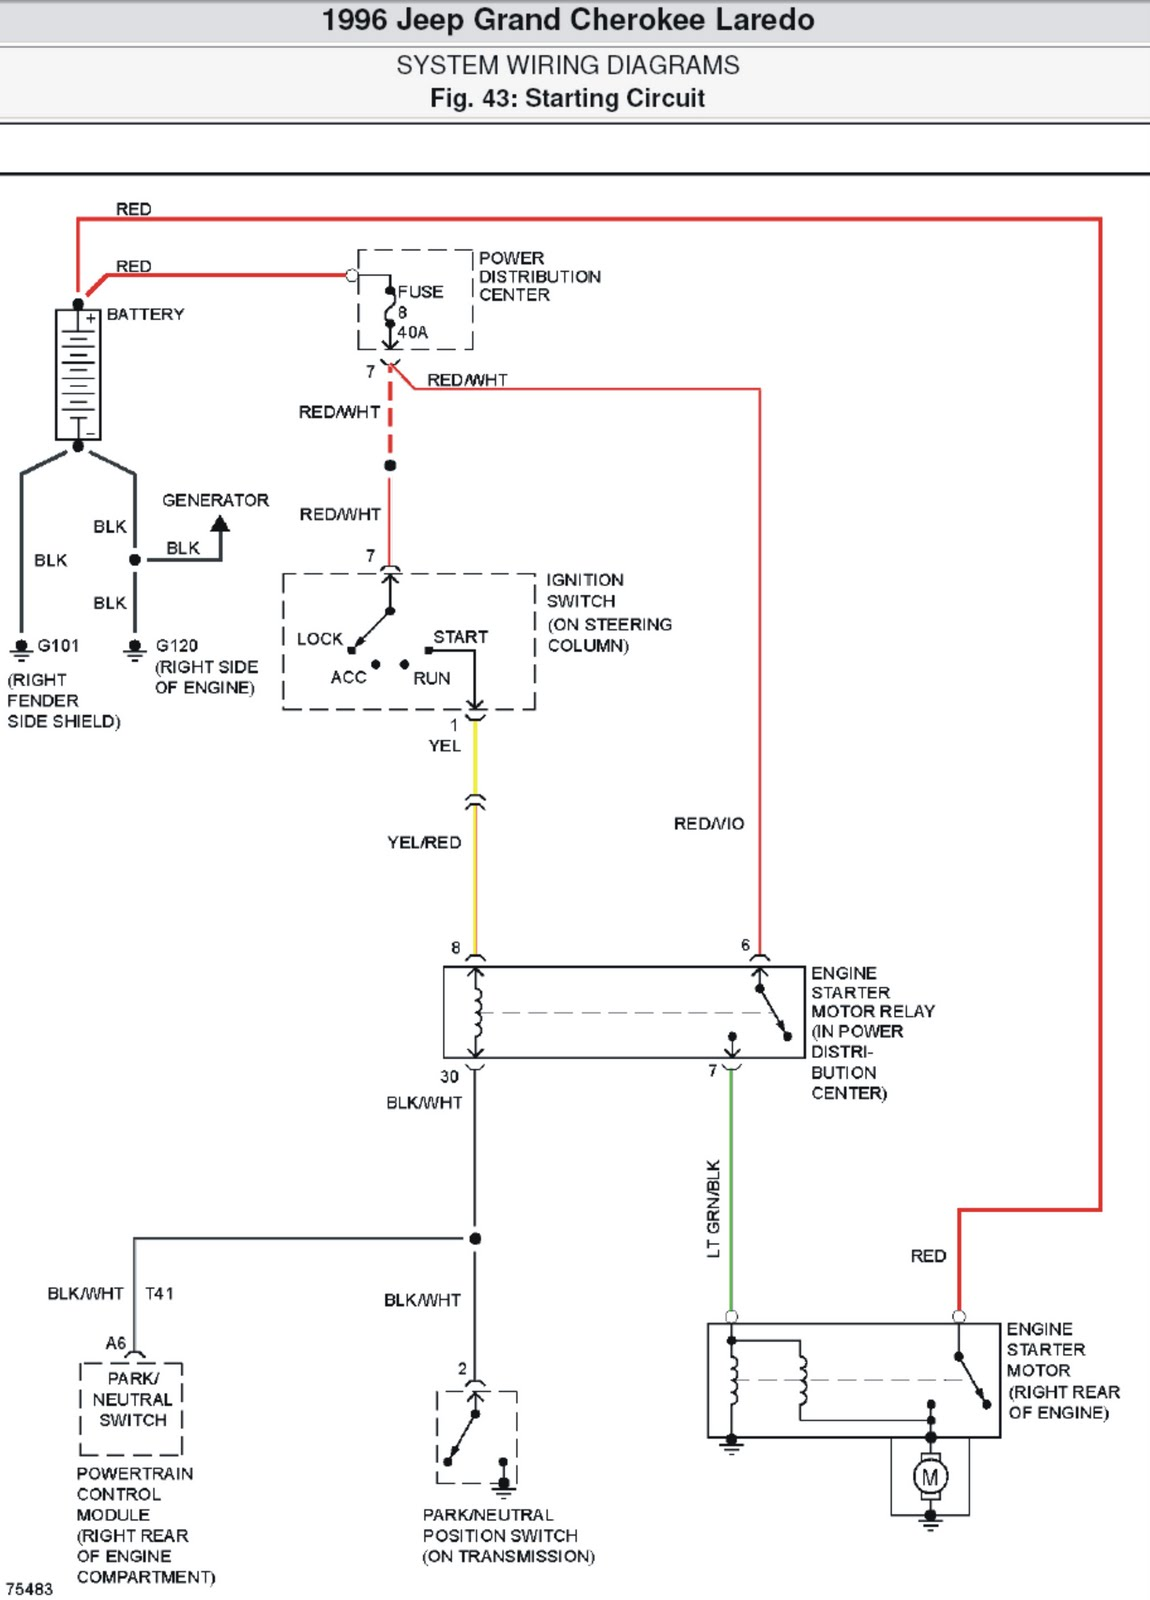 DIAGRAM] 1998 Jeep Cherokee Wiring Diagrams FULL Version HD Quality Wiring  Diagrams - ALTOCART.CREAPITCHOUNE.FRDiagram Database